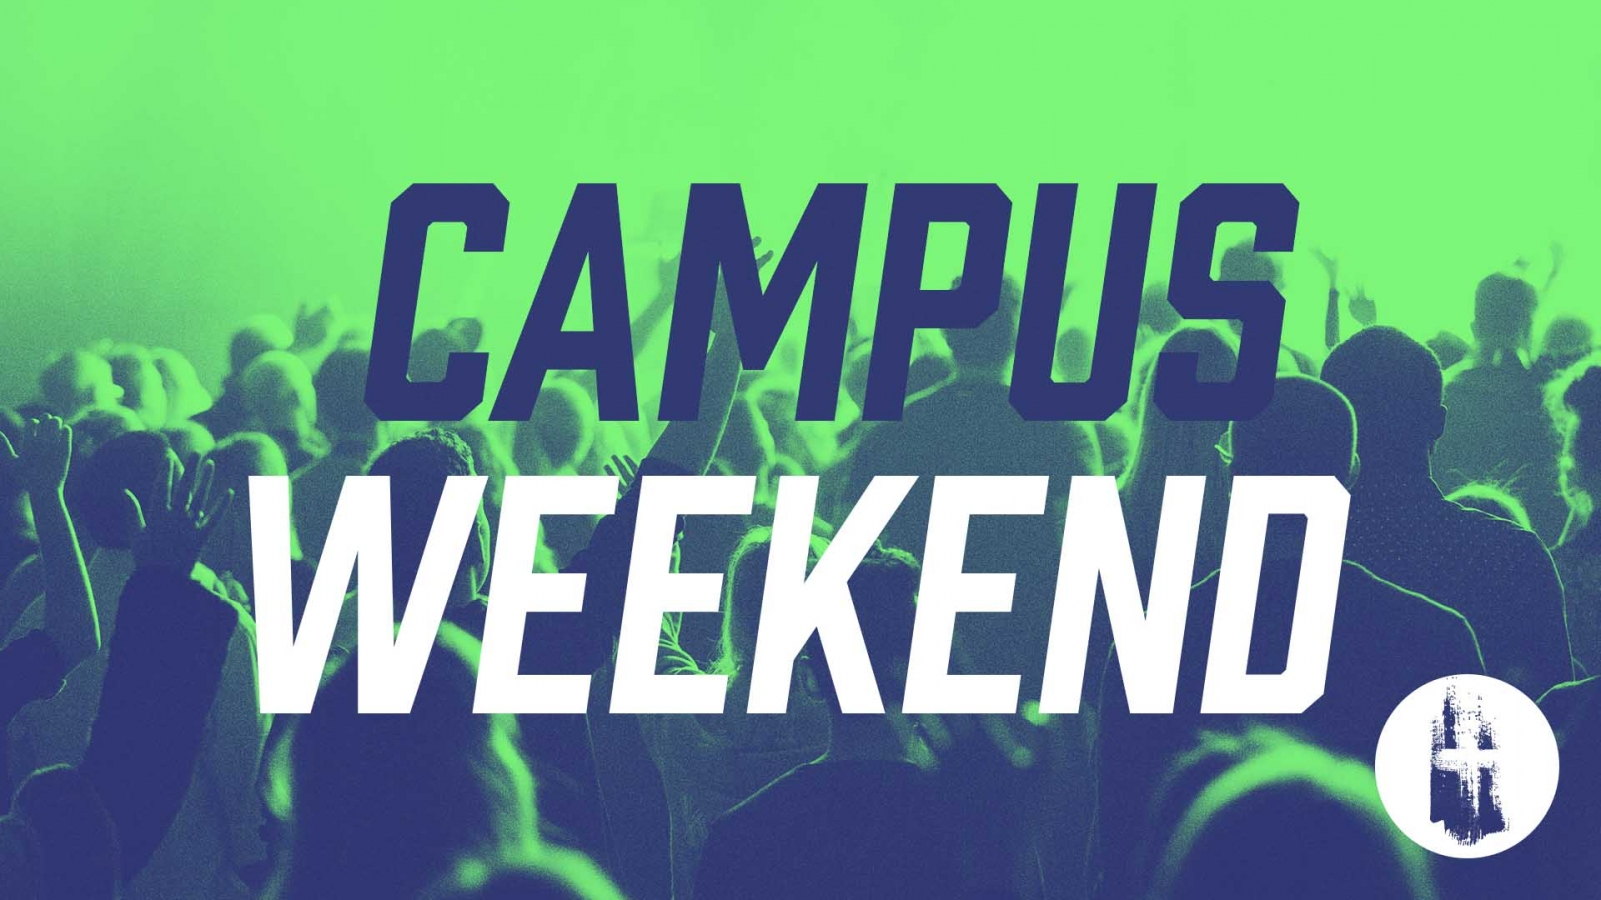 Campus Weekend